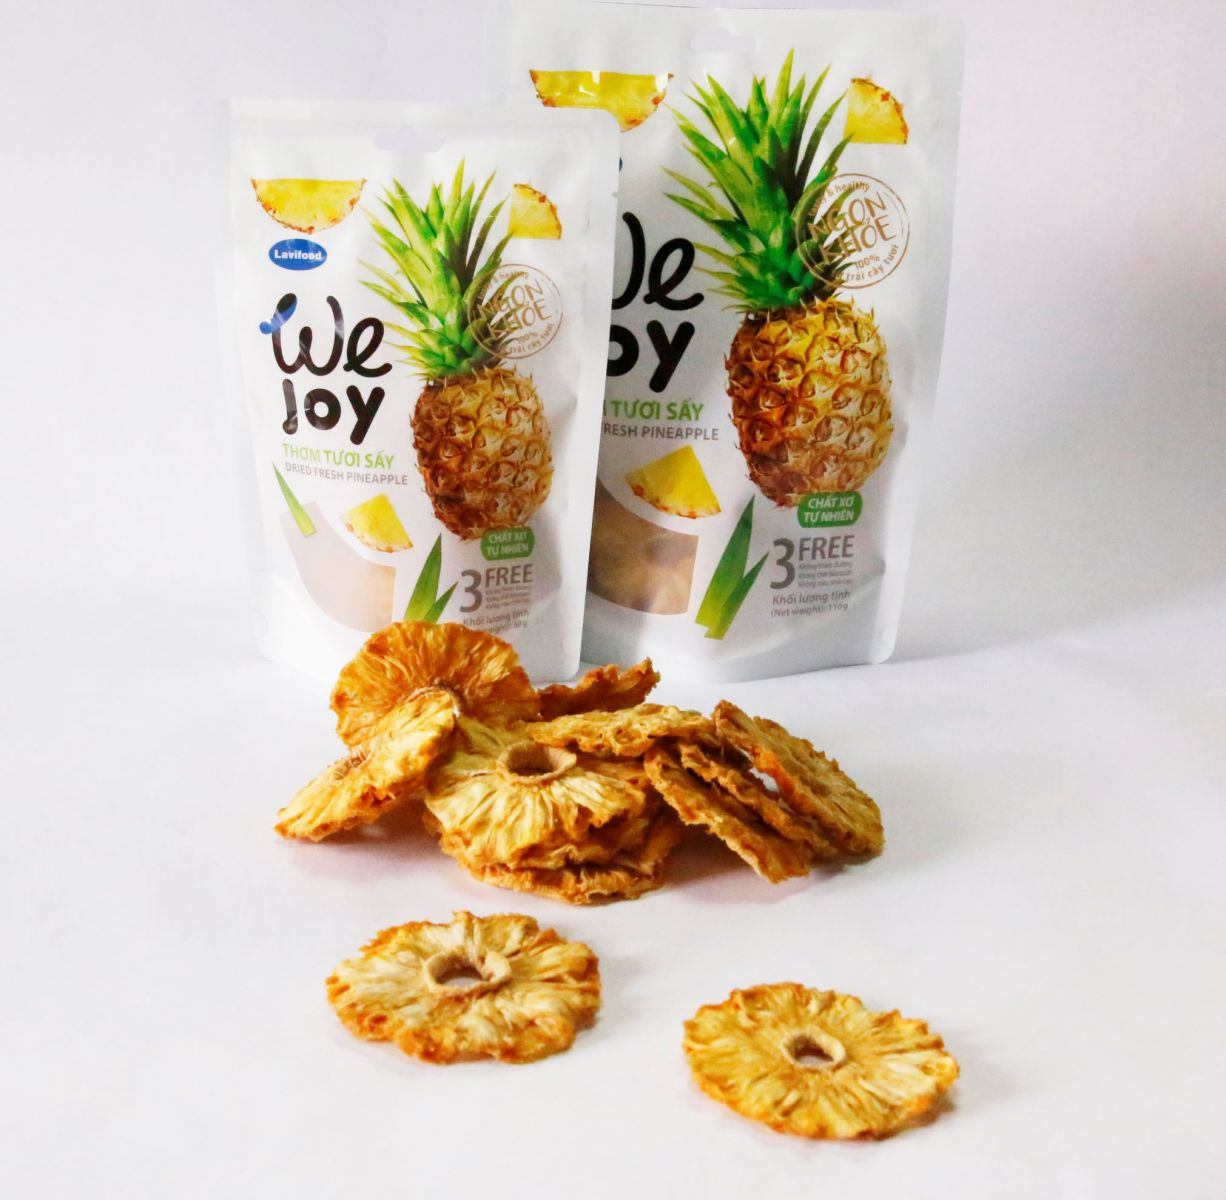 https://www.lavifood.com/en/products/dried-fruit-vegetables/we-joy-dried-pinaeapple